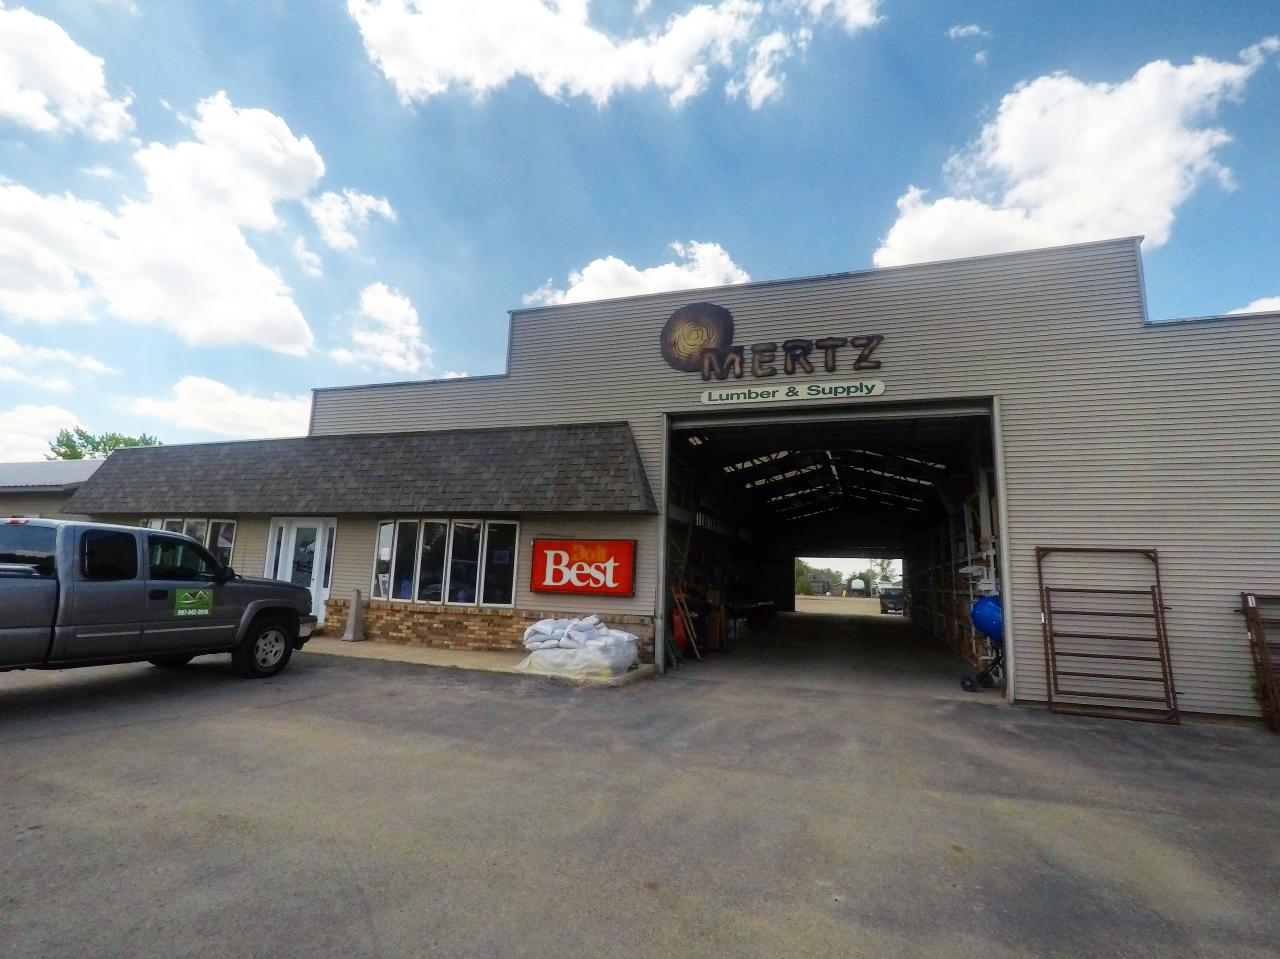 Mertz Lumber & Supply